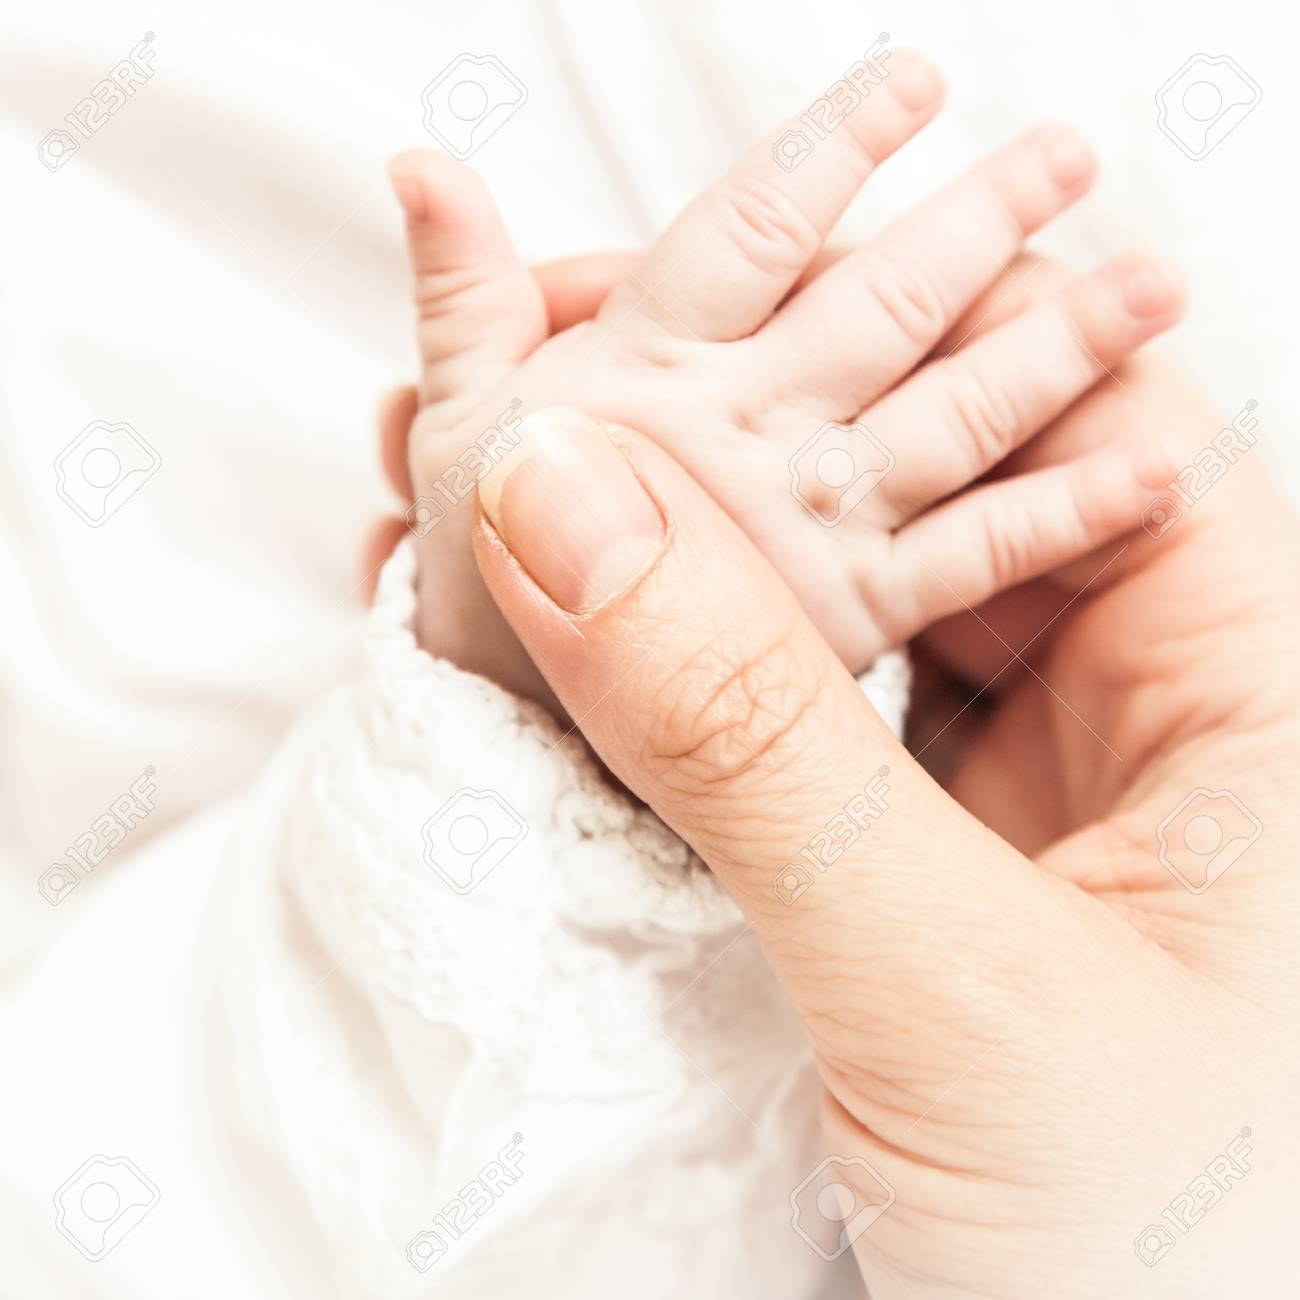 A Close-up of a baby hand Stock Photo - 13940641